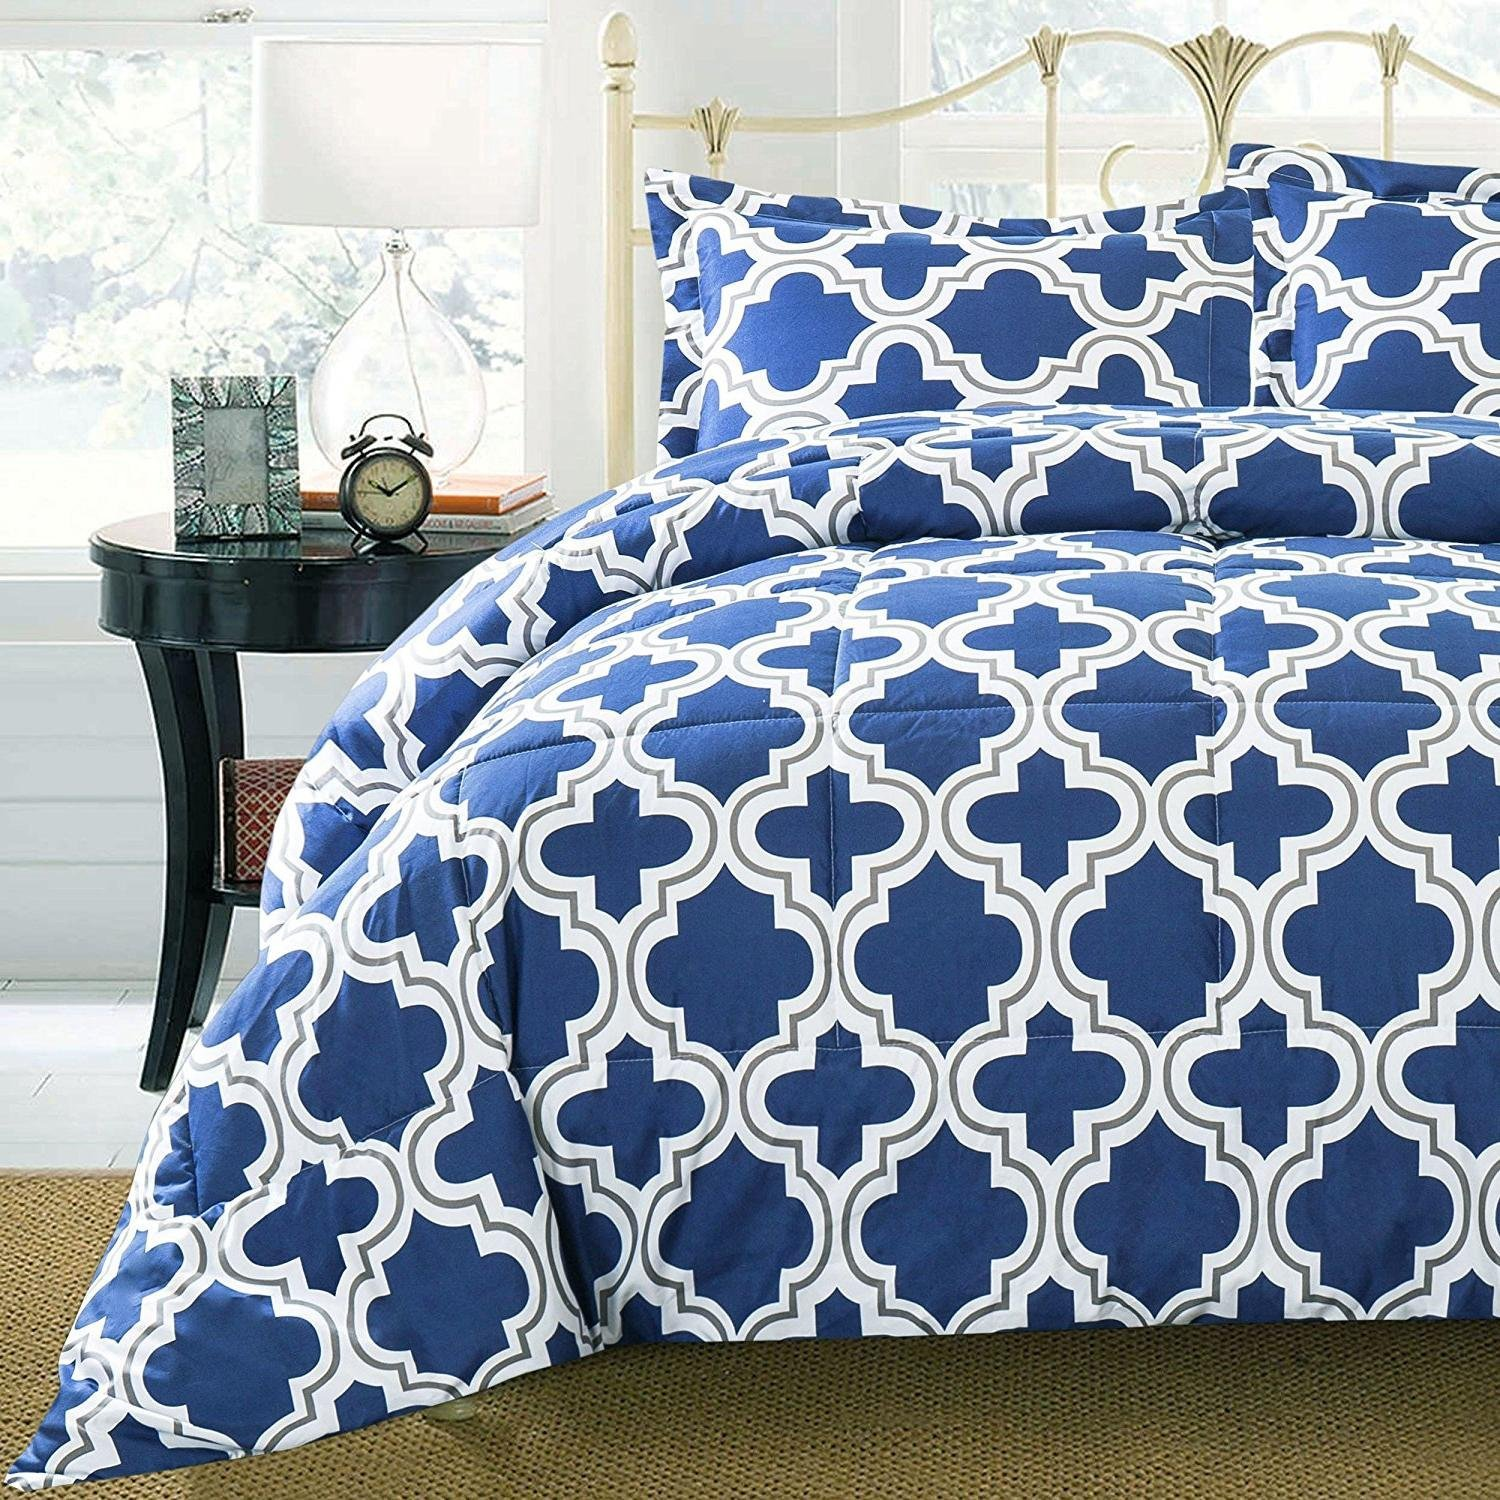 MS 3pc Navy Blue White Grey Trellis Comforter Full Queen Set, Fun Vibrant Geometric Lattice Floral Theme Bedding, Microfiber Dark Gray, Quatrefoil Themed Pattern